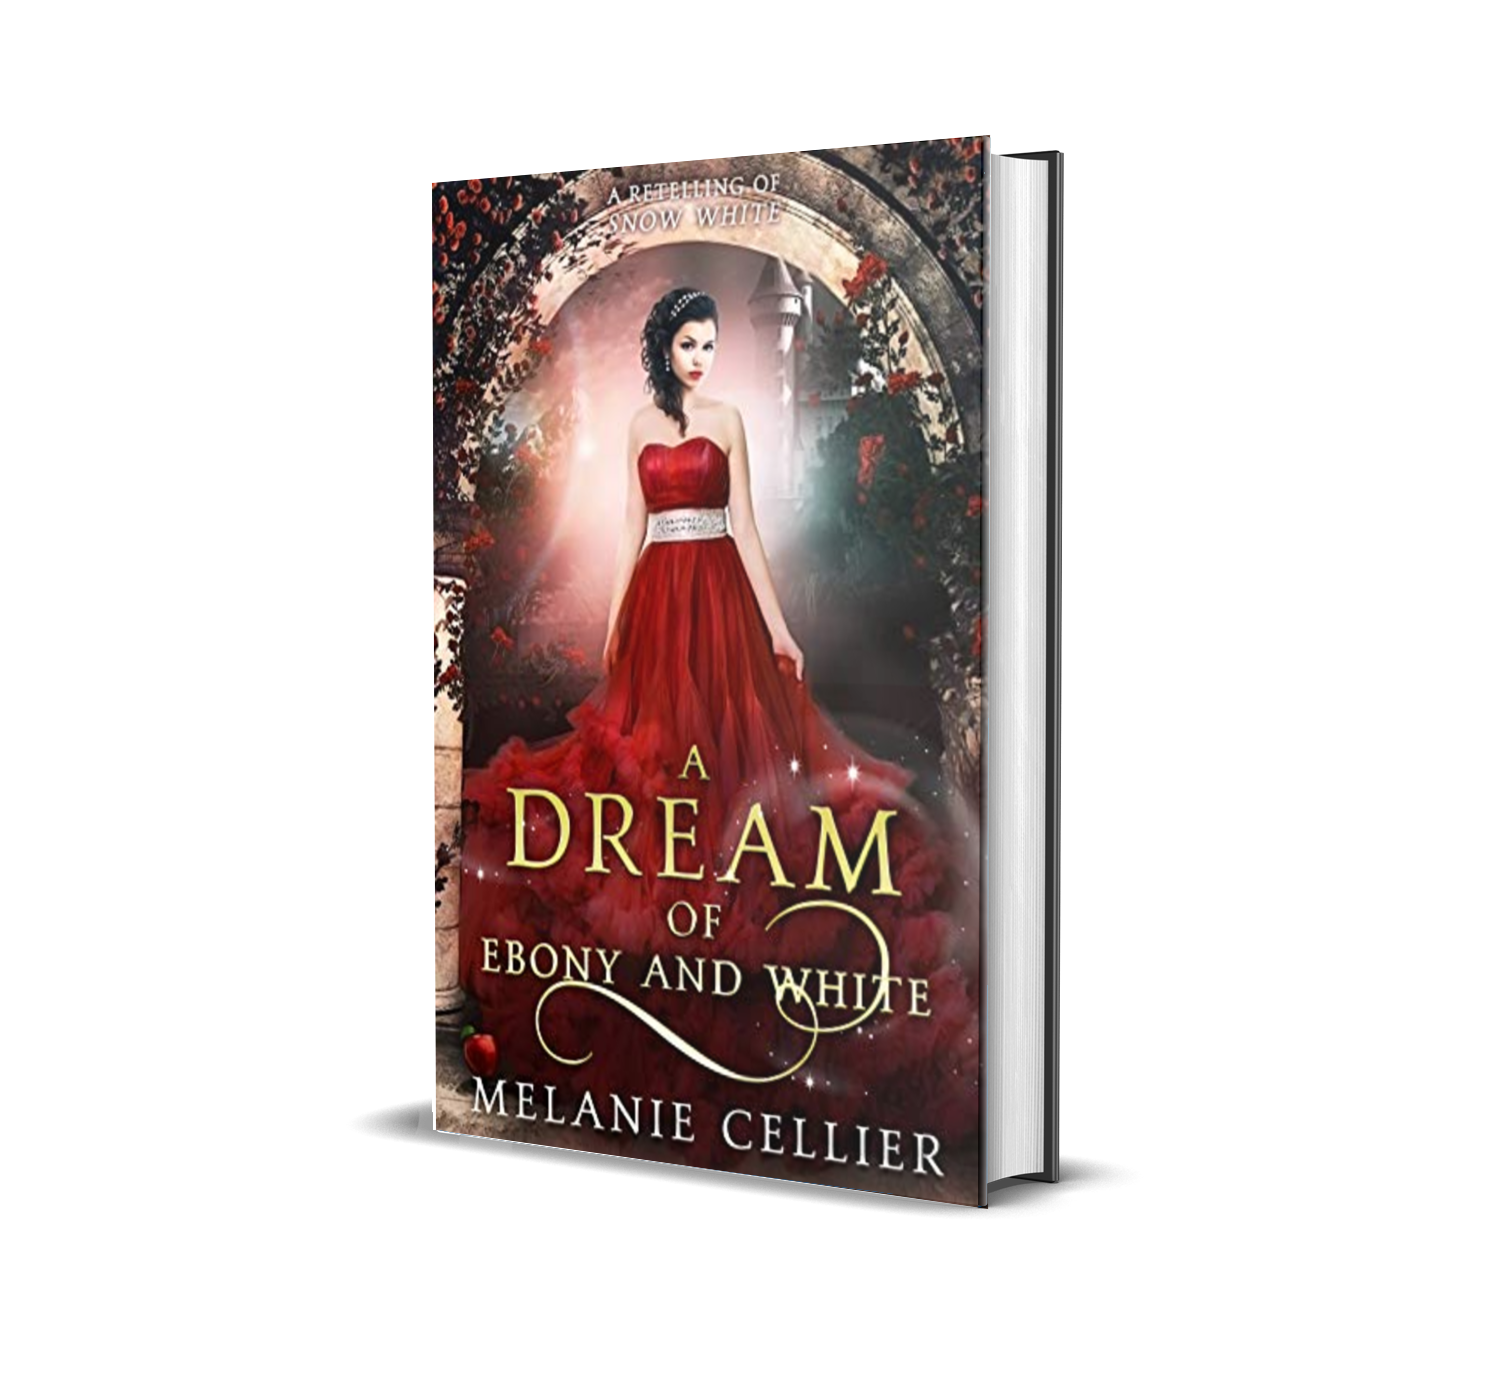 A Dream of Ebony and White: A Retelling of Snow White  by Melanie Cellier